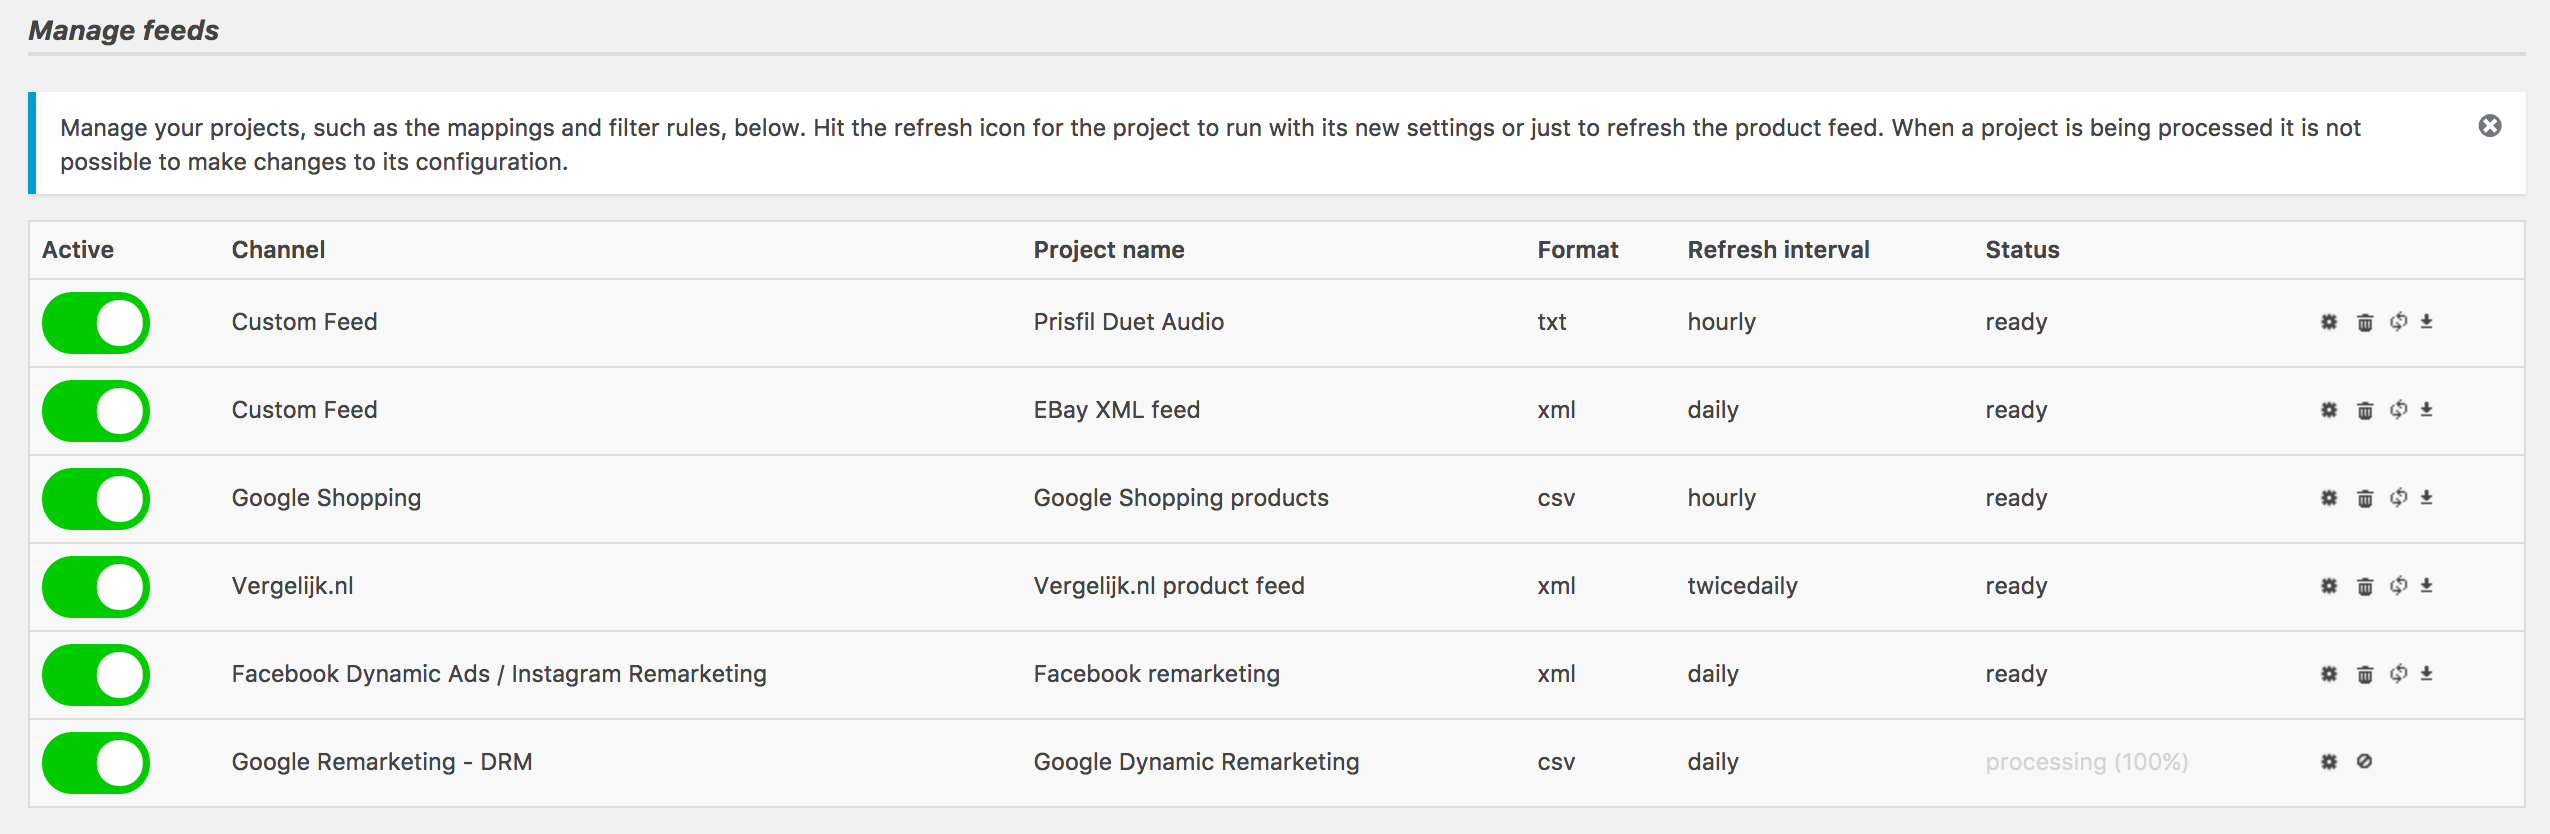 From within the manage feeds section you can control, (re)confige and activate or pause your product feed projects